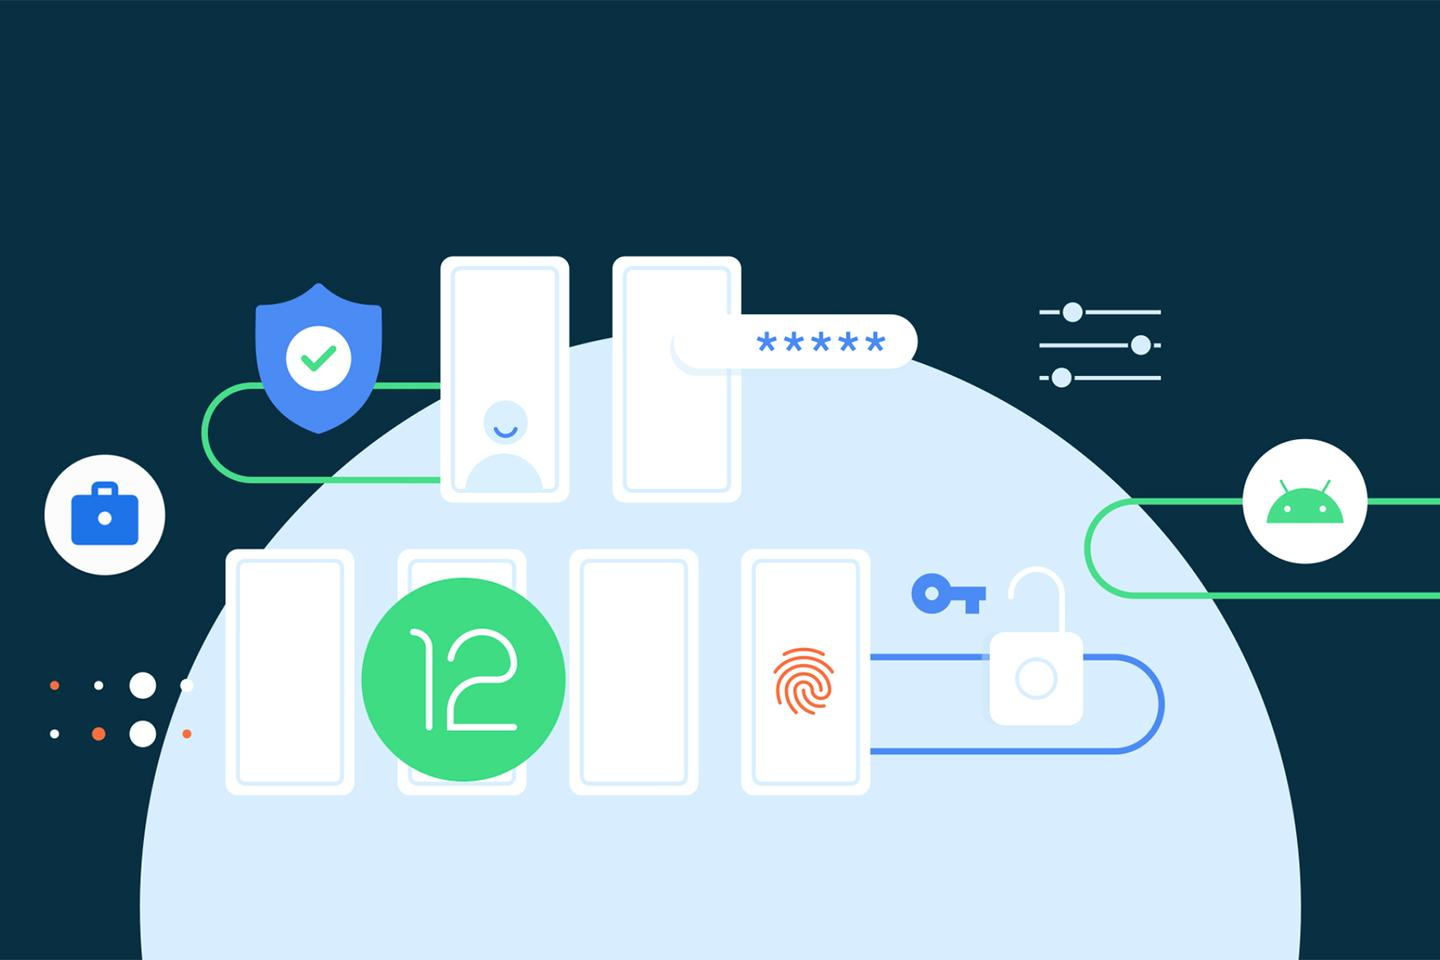 Android 12 is here ... for developers at least